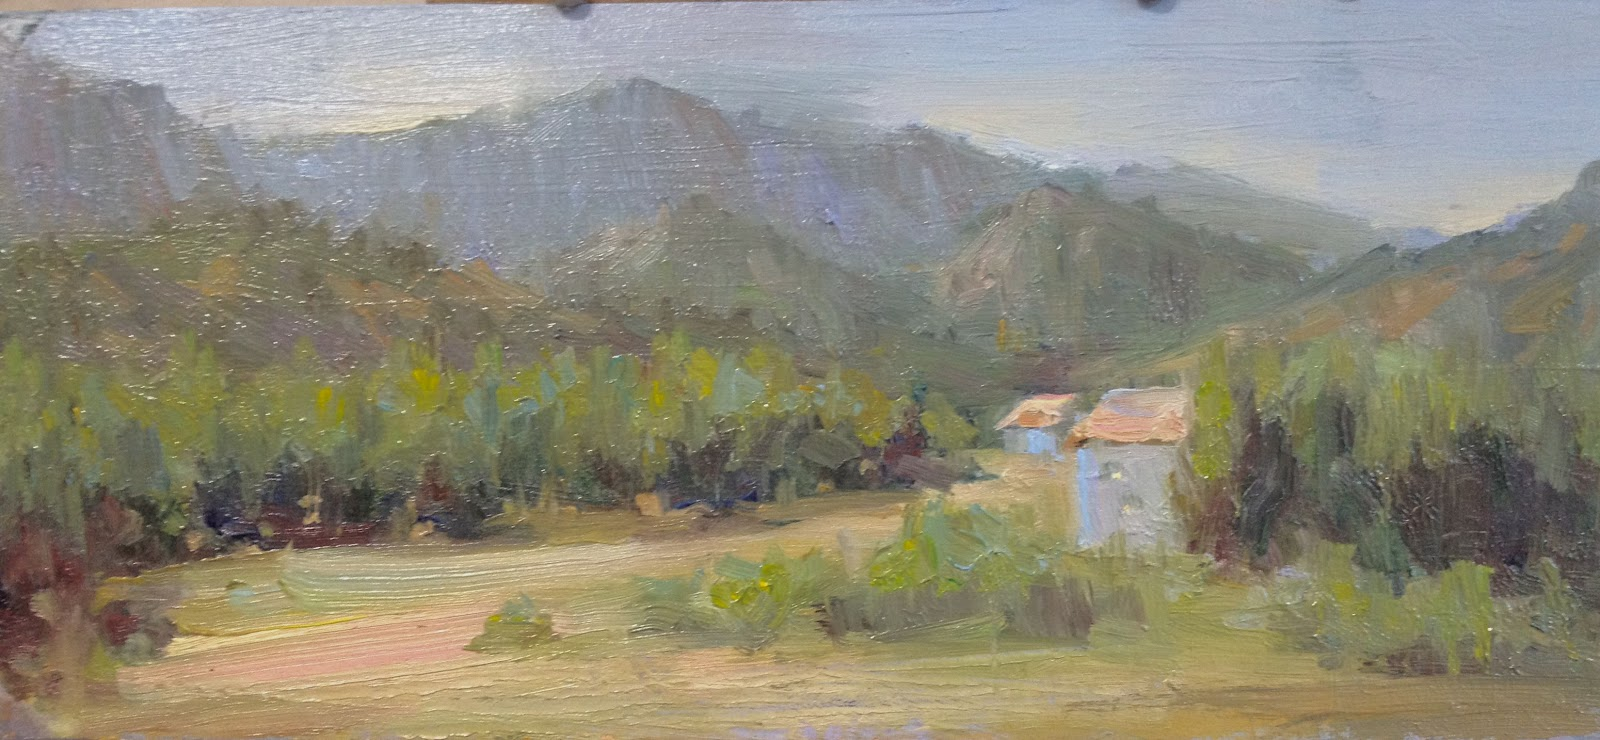 PORTRAIT PAINTER GOLD BY JOHANNA SPINKS How To Paint The Landscape